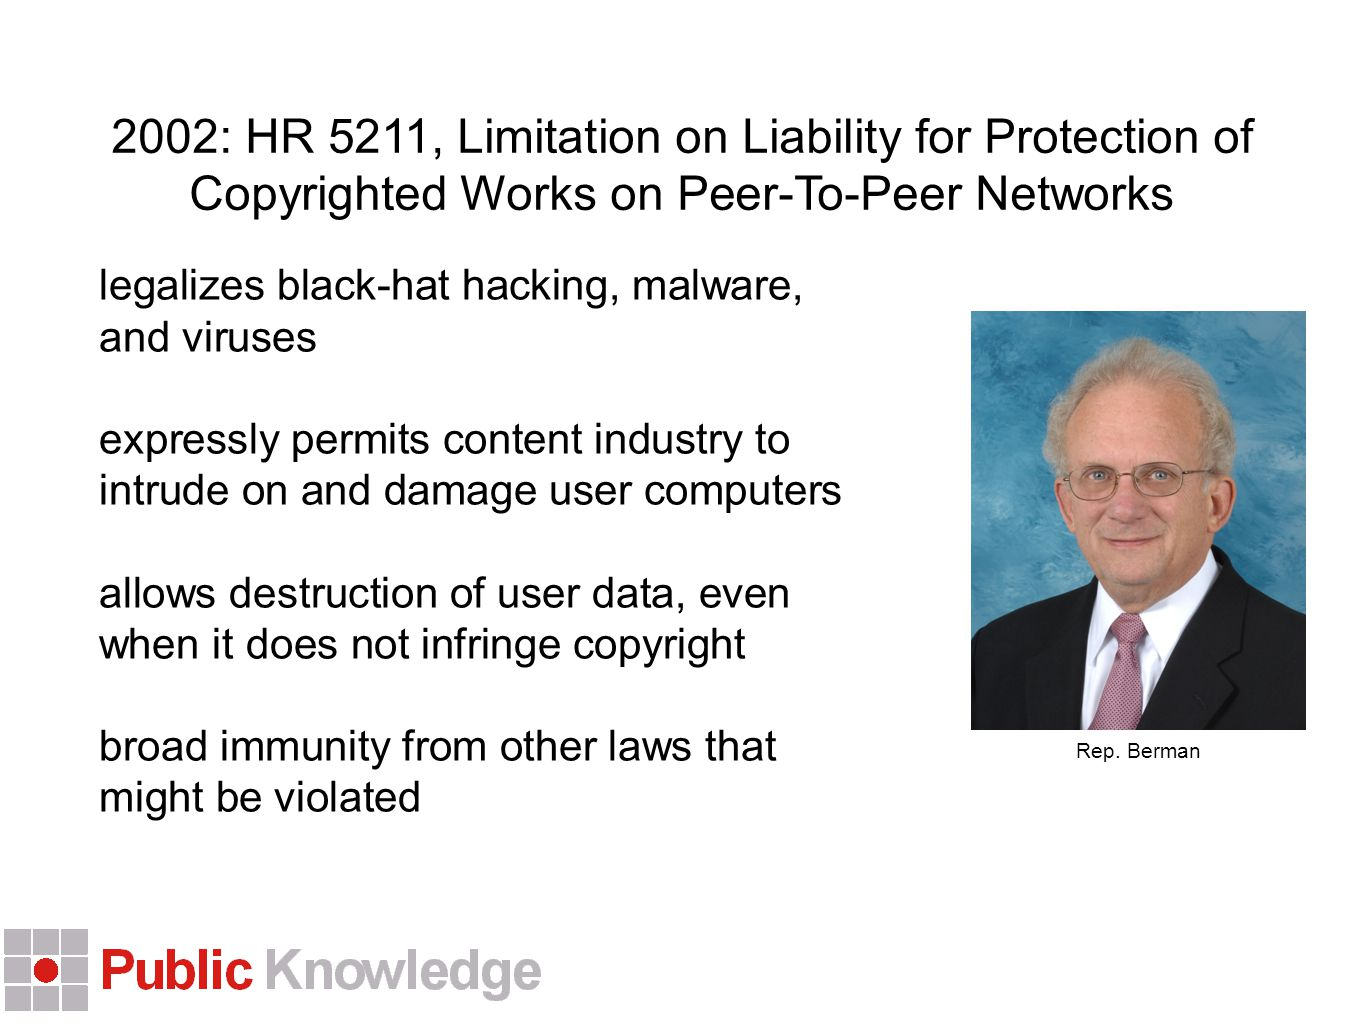 2002: HR 5211, Limitation on Liability for Protection of Copyrighted Works on Peer-To-Peer Networks legalizes black-hat hacking, malware, and viruses expressly permits content industry to intrude on and damage user computers allows destruction of user data, even when it does not infringe copyright broad immunity from other laws that might be violated Rep.